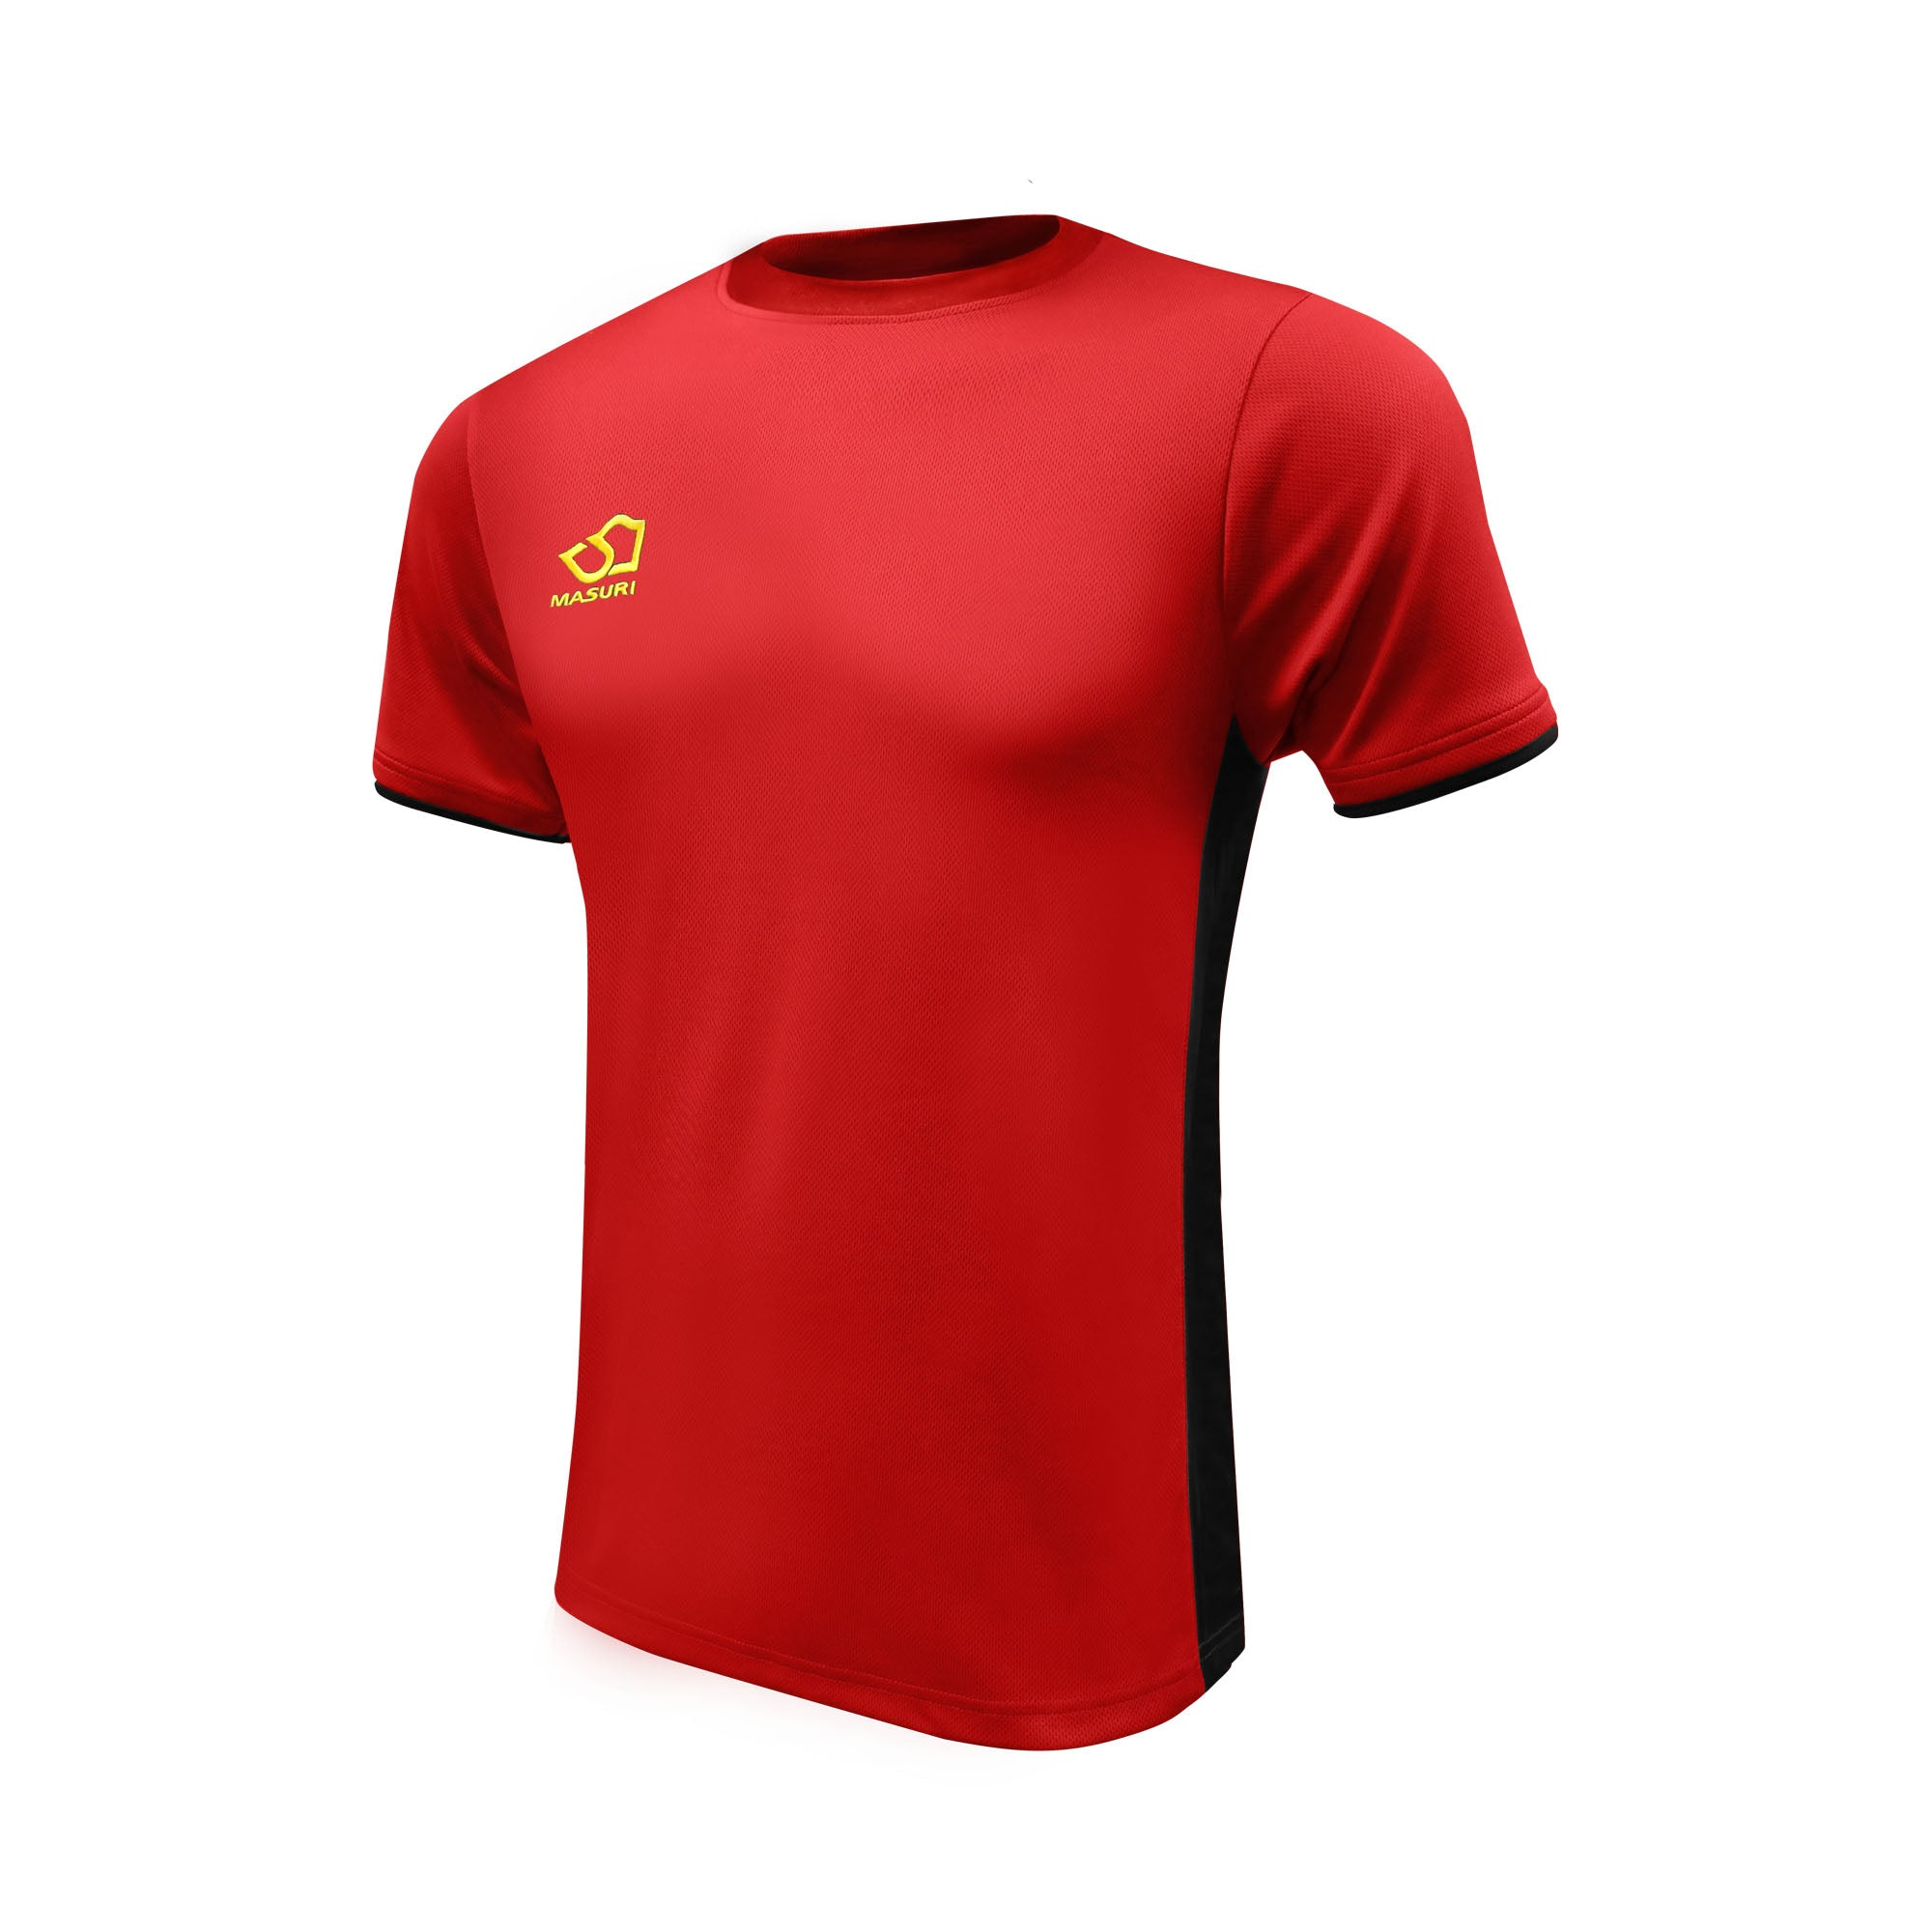 MENS MASURI TRAINING T-SHIRT